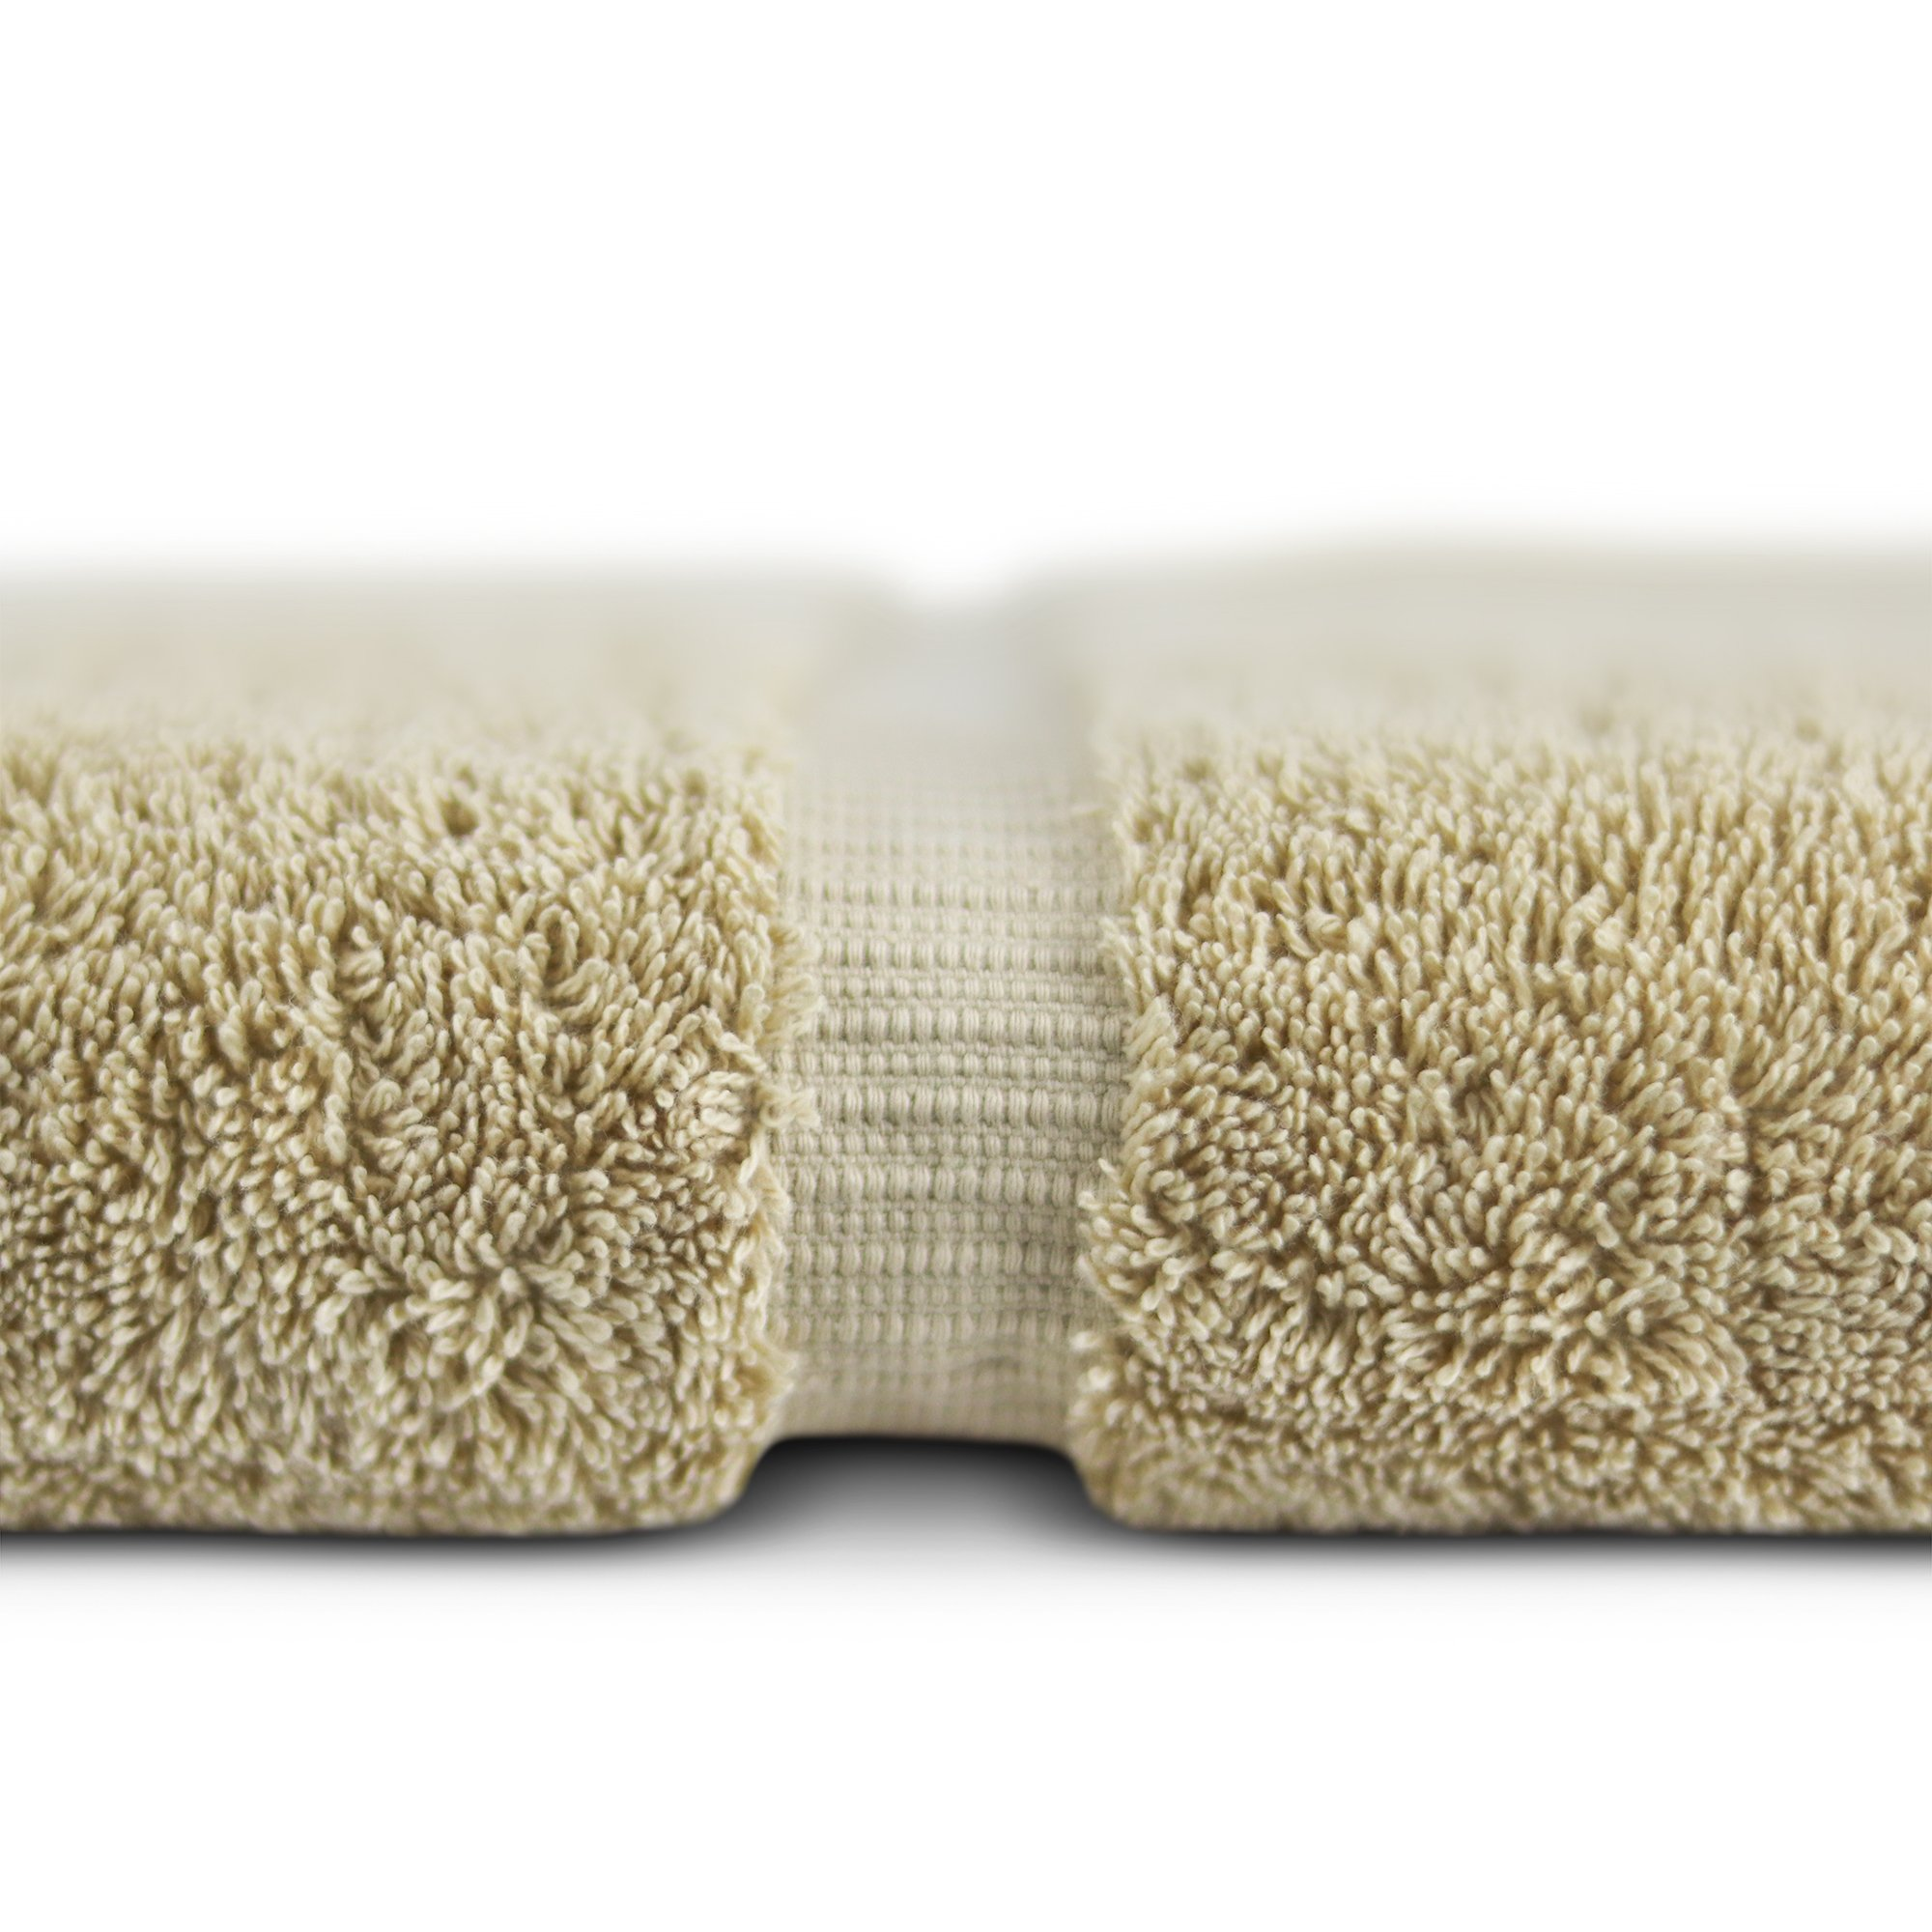 Towel Bazaar Premium Eco-Friendly 100% Turkish Cotton Hand Towel Set of 4, Multipurpose Bathroom Towels for Hand, Face, Gym and Spa (16 x 30 inches, Driftwood) by Towel Bazaar (Image #3)